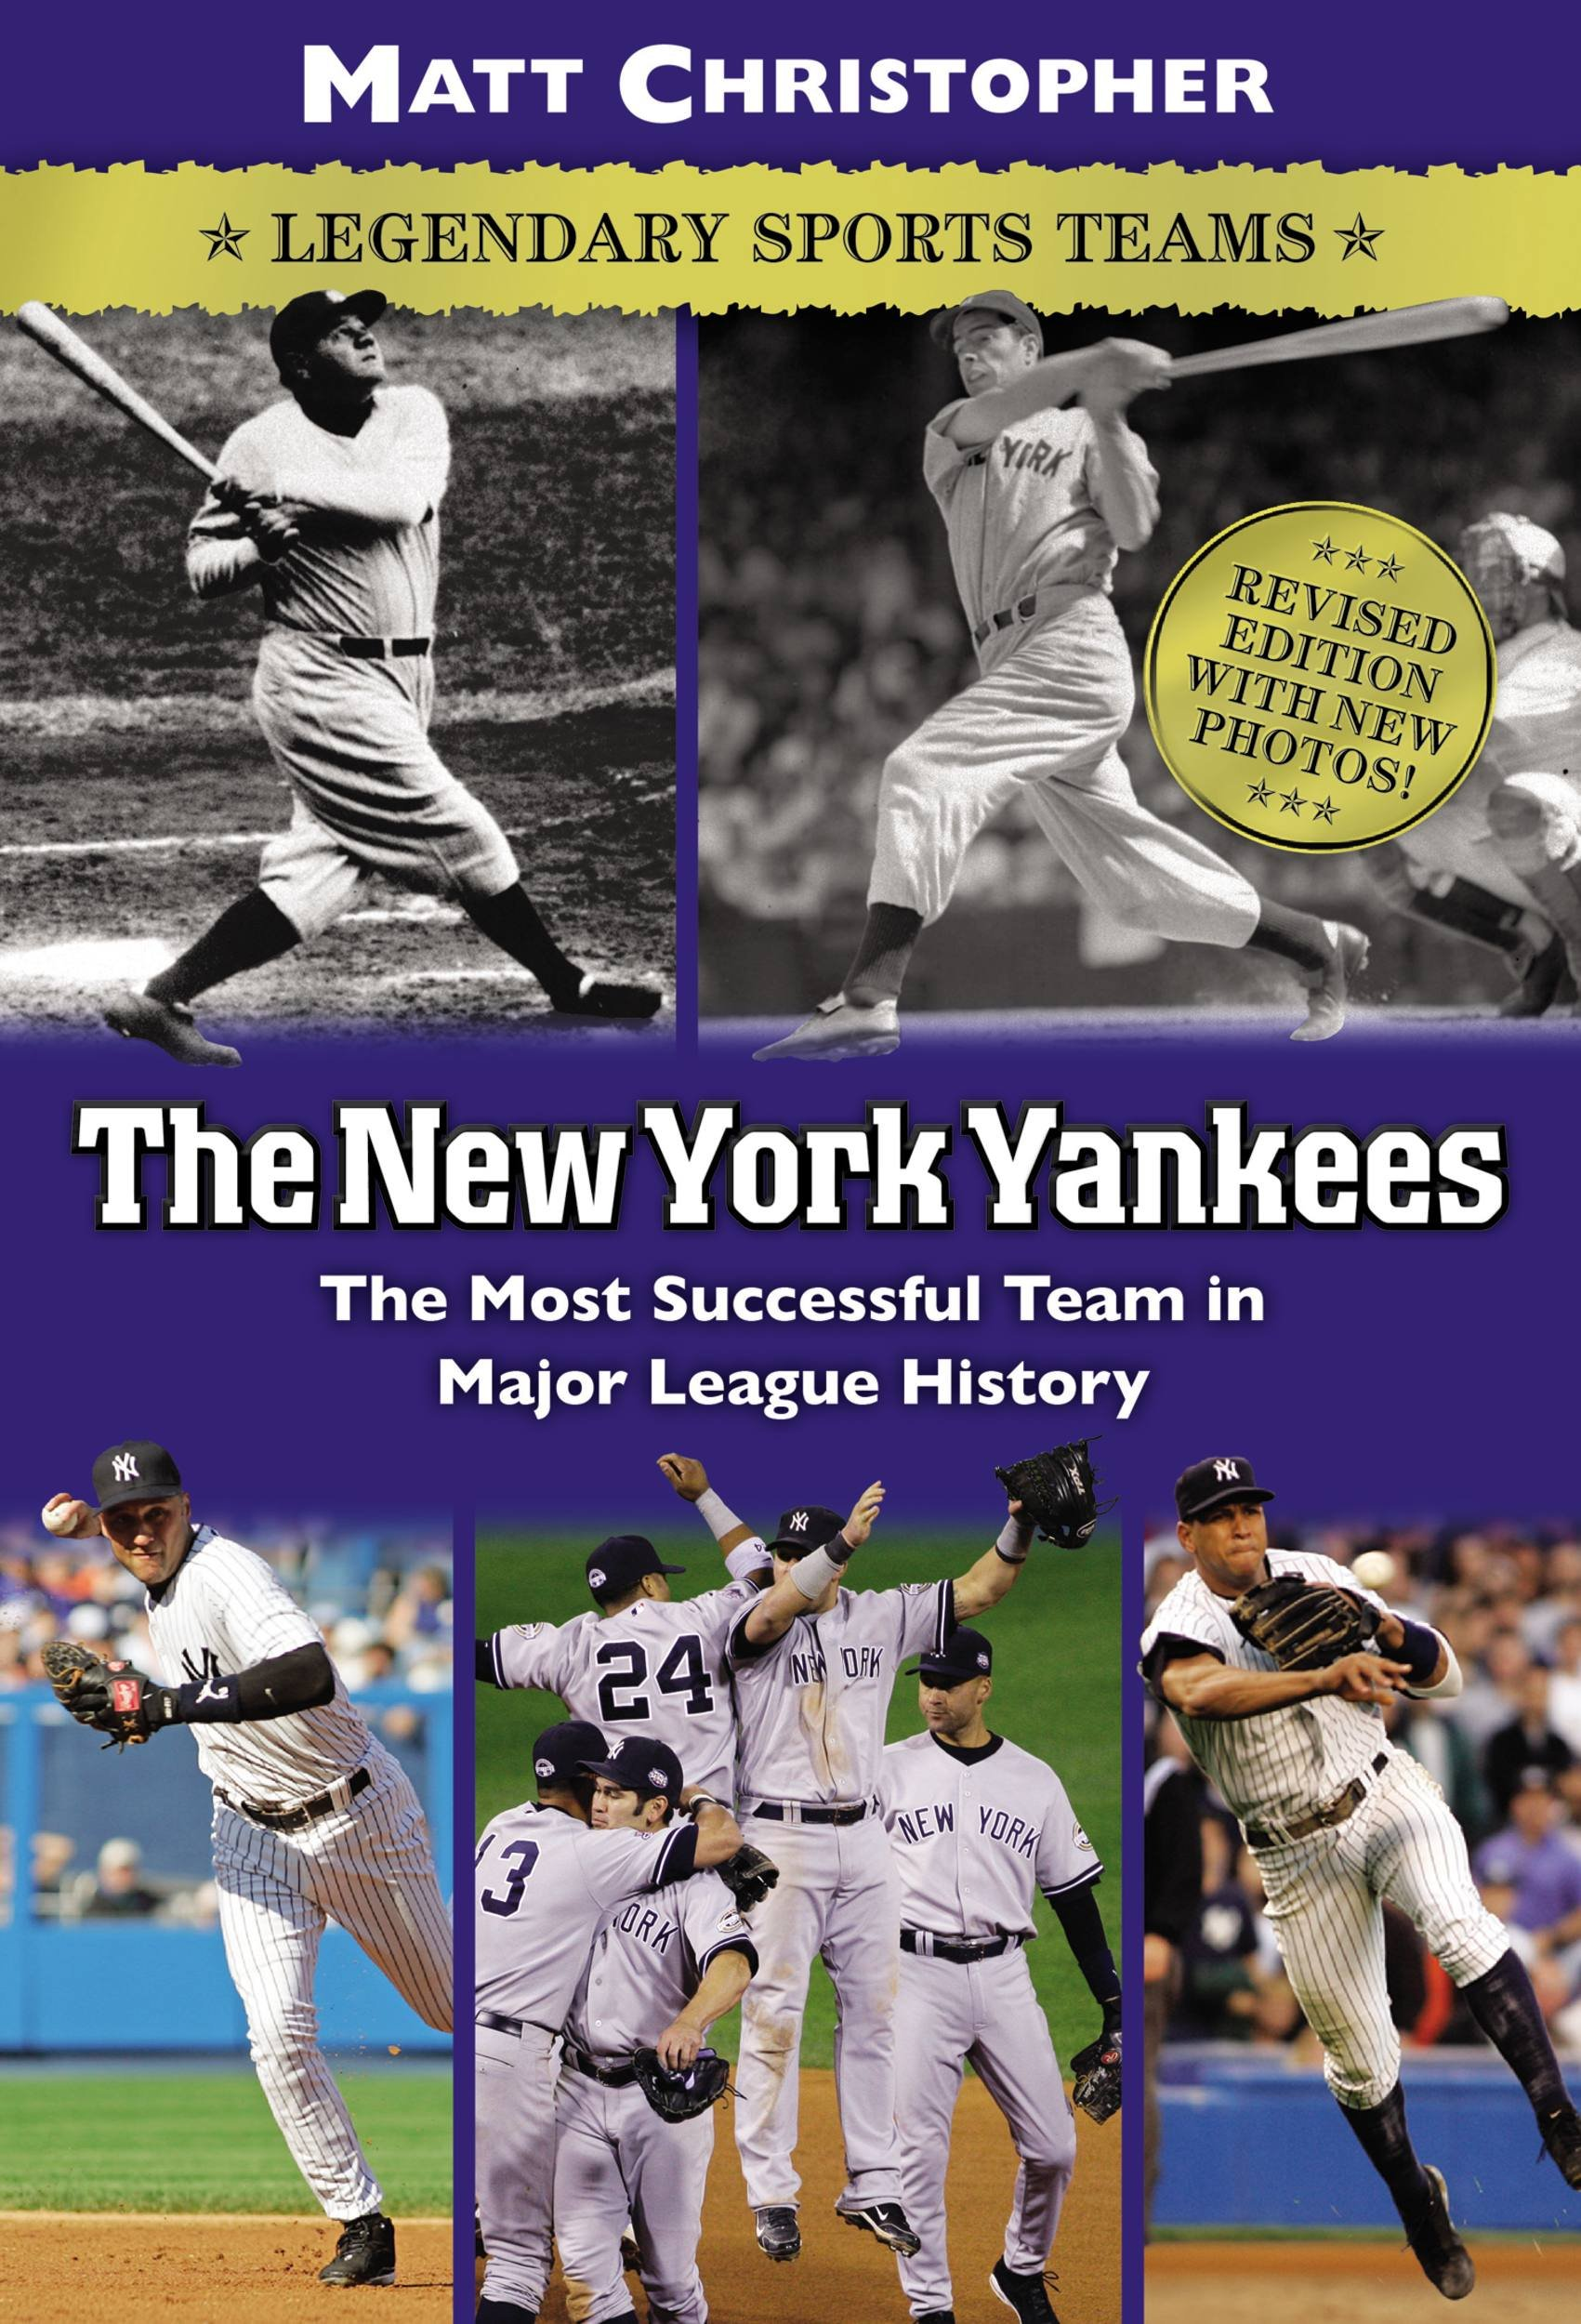 Download The New York Yankees: Legendary Sports Teams (Matt Christopher Legendary Sports Events) (English Edition)